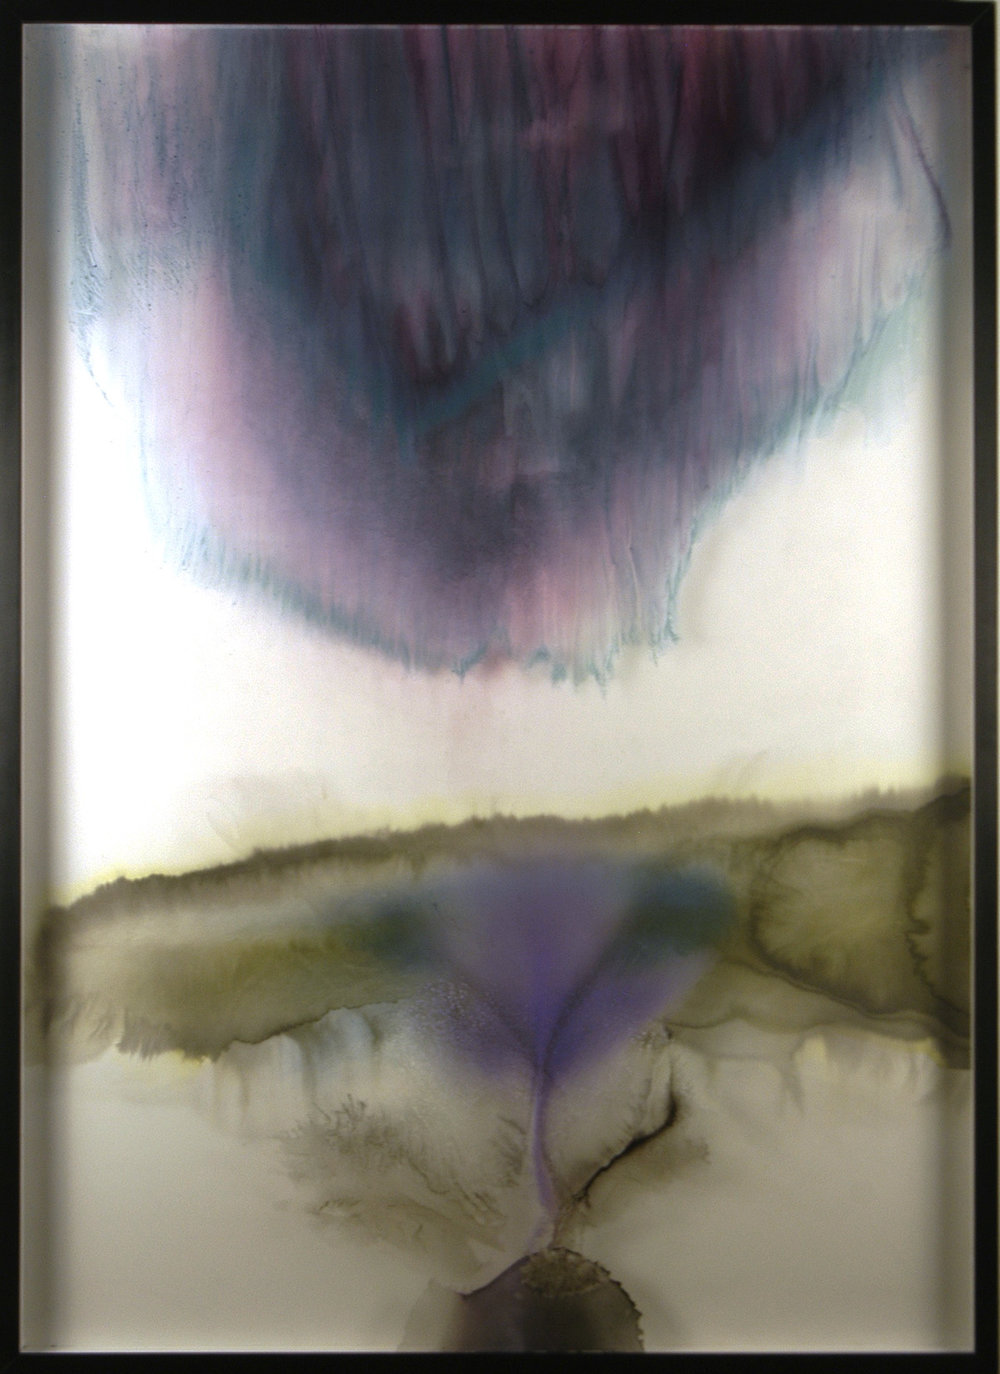 Aurora  sumi ink and watercolor on glass and gesso panel  68 x 49 inches ERO 101G